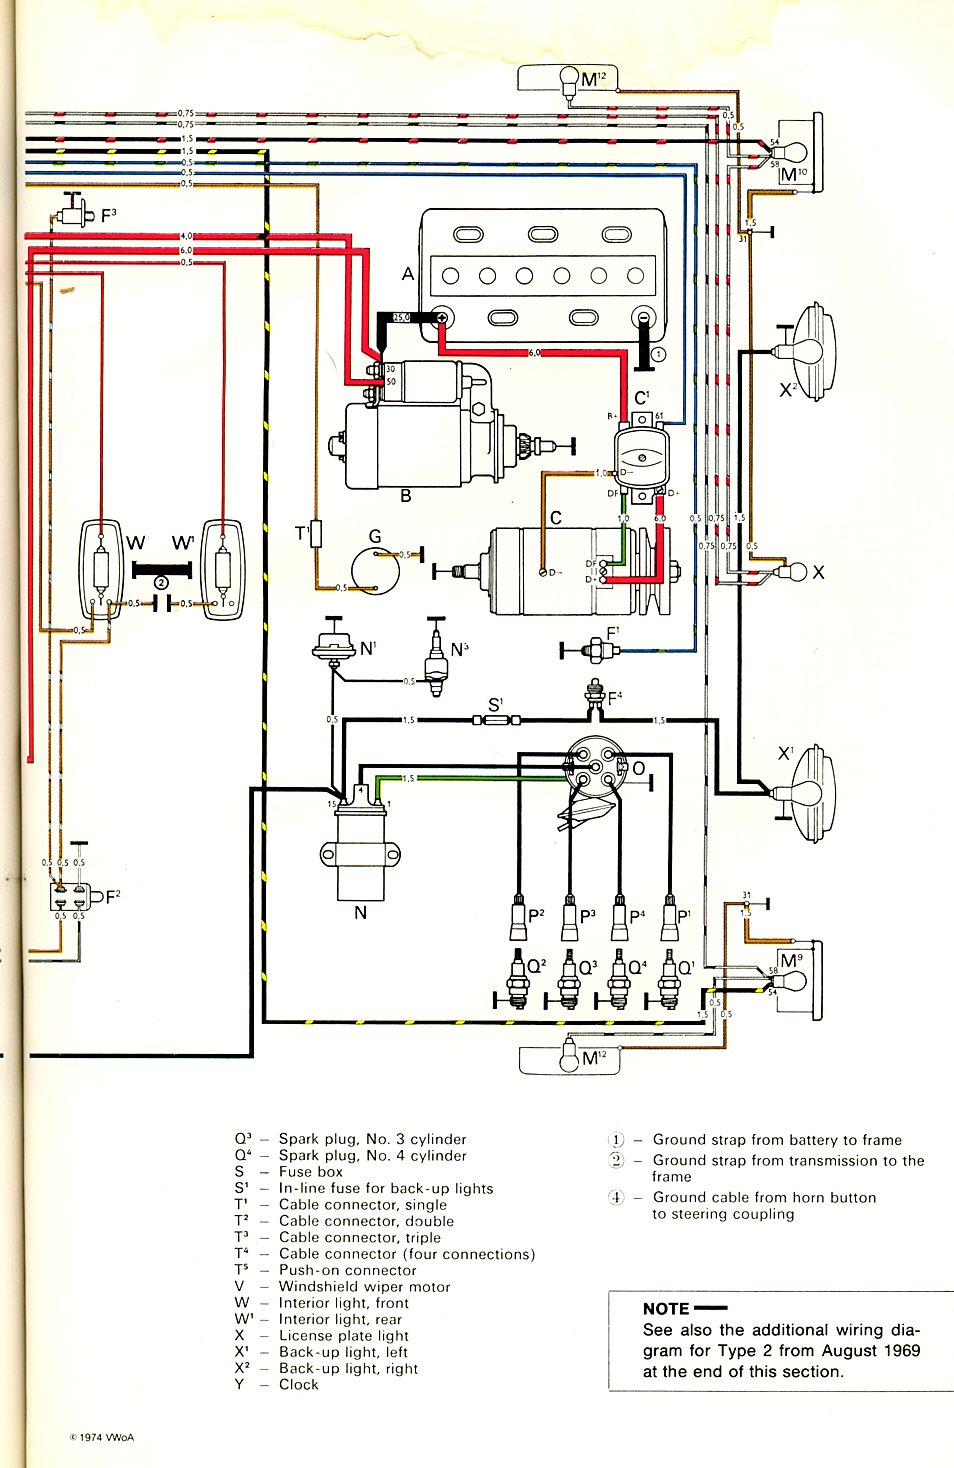 baybus_70b thesamba com type 2 wiring diagrams vw engine wiring diagram at edmiracle.co